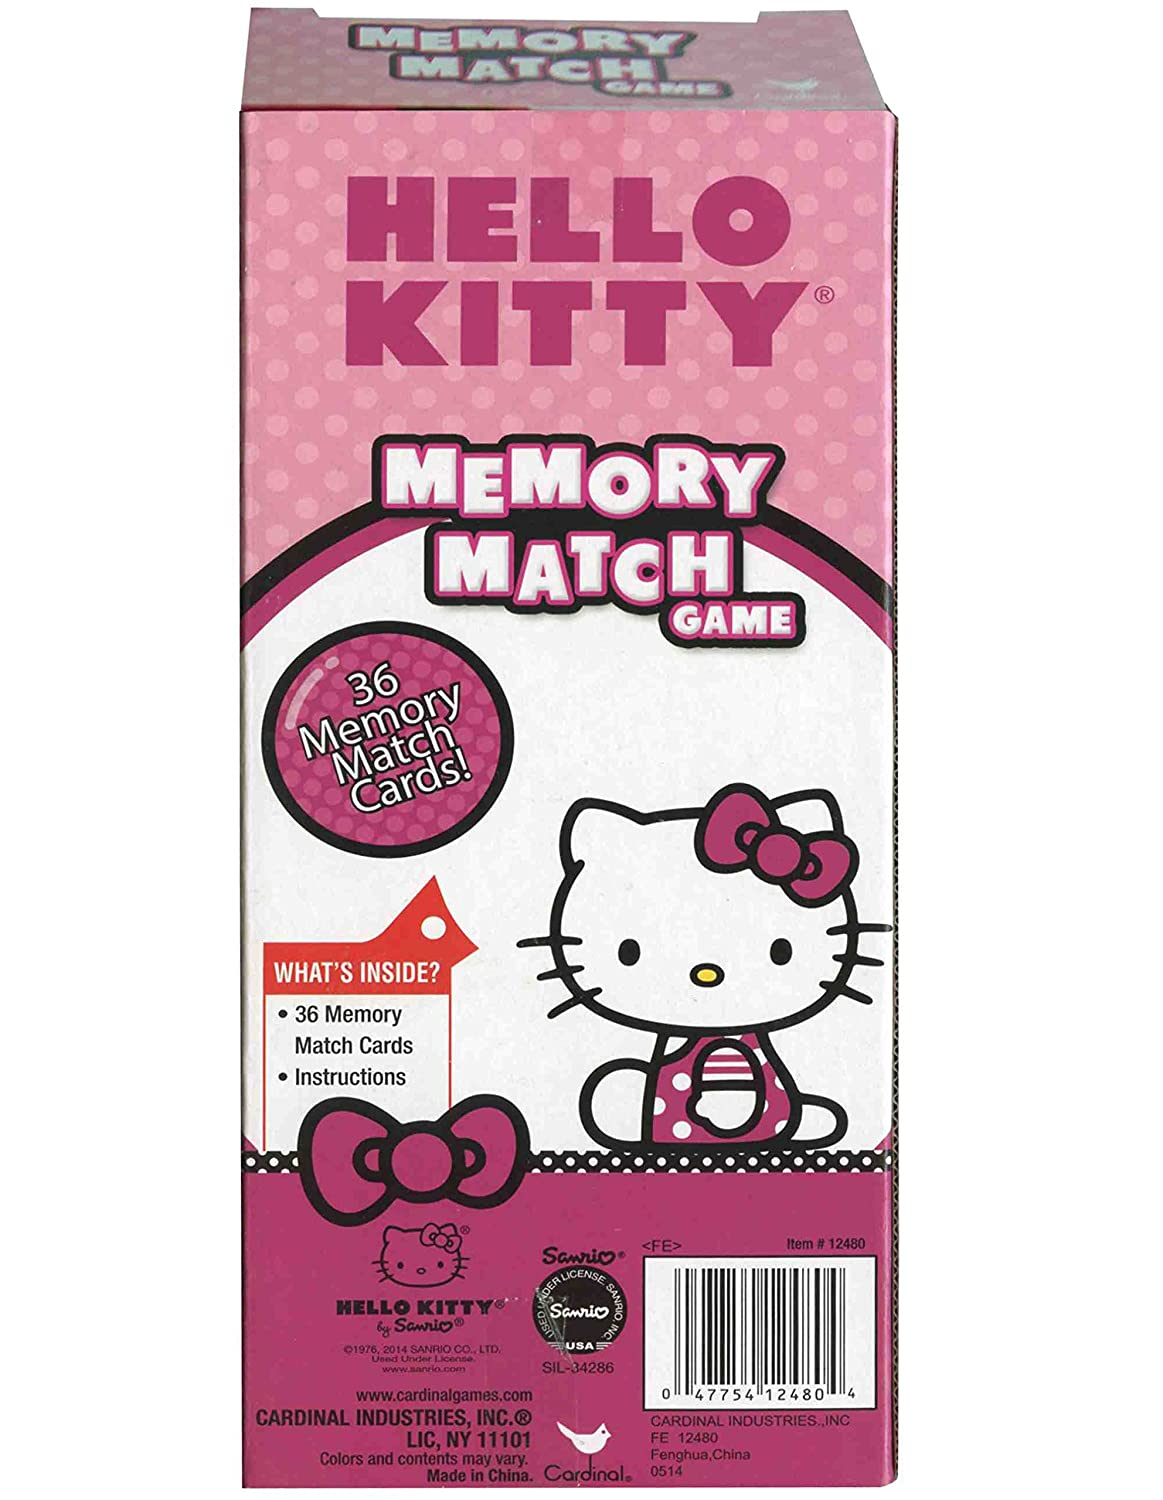 Uncategorized Hello Kitty Matching Game amazon com 1 x hello kitty memory match game by sanrio toys games